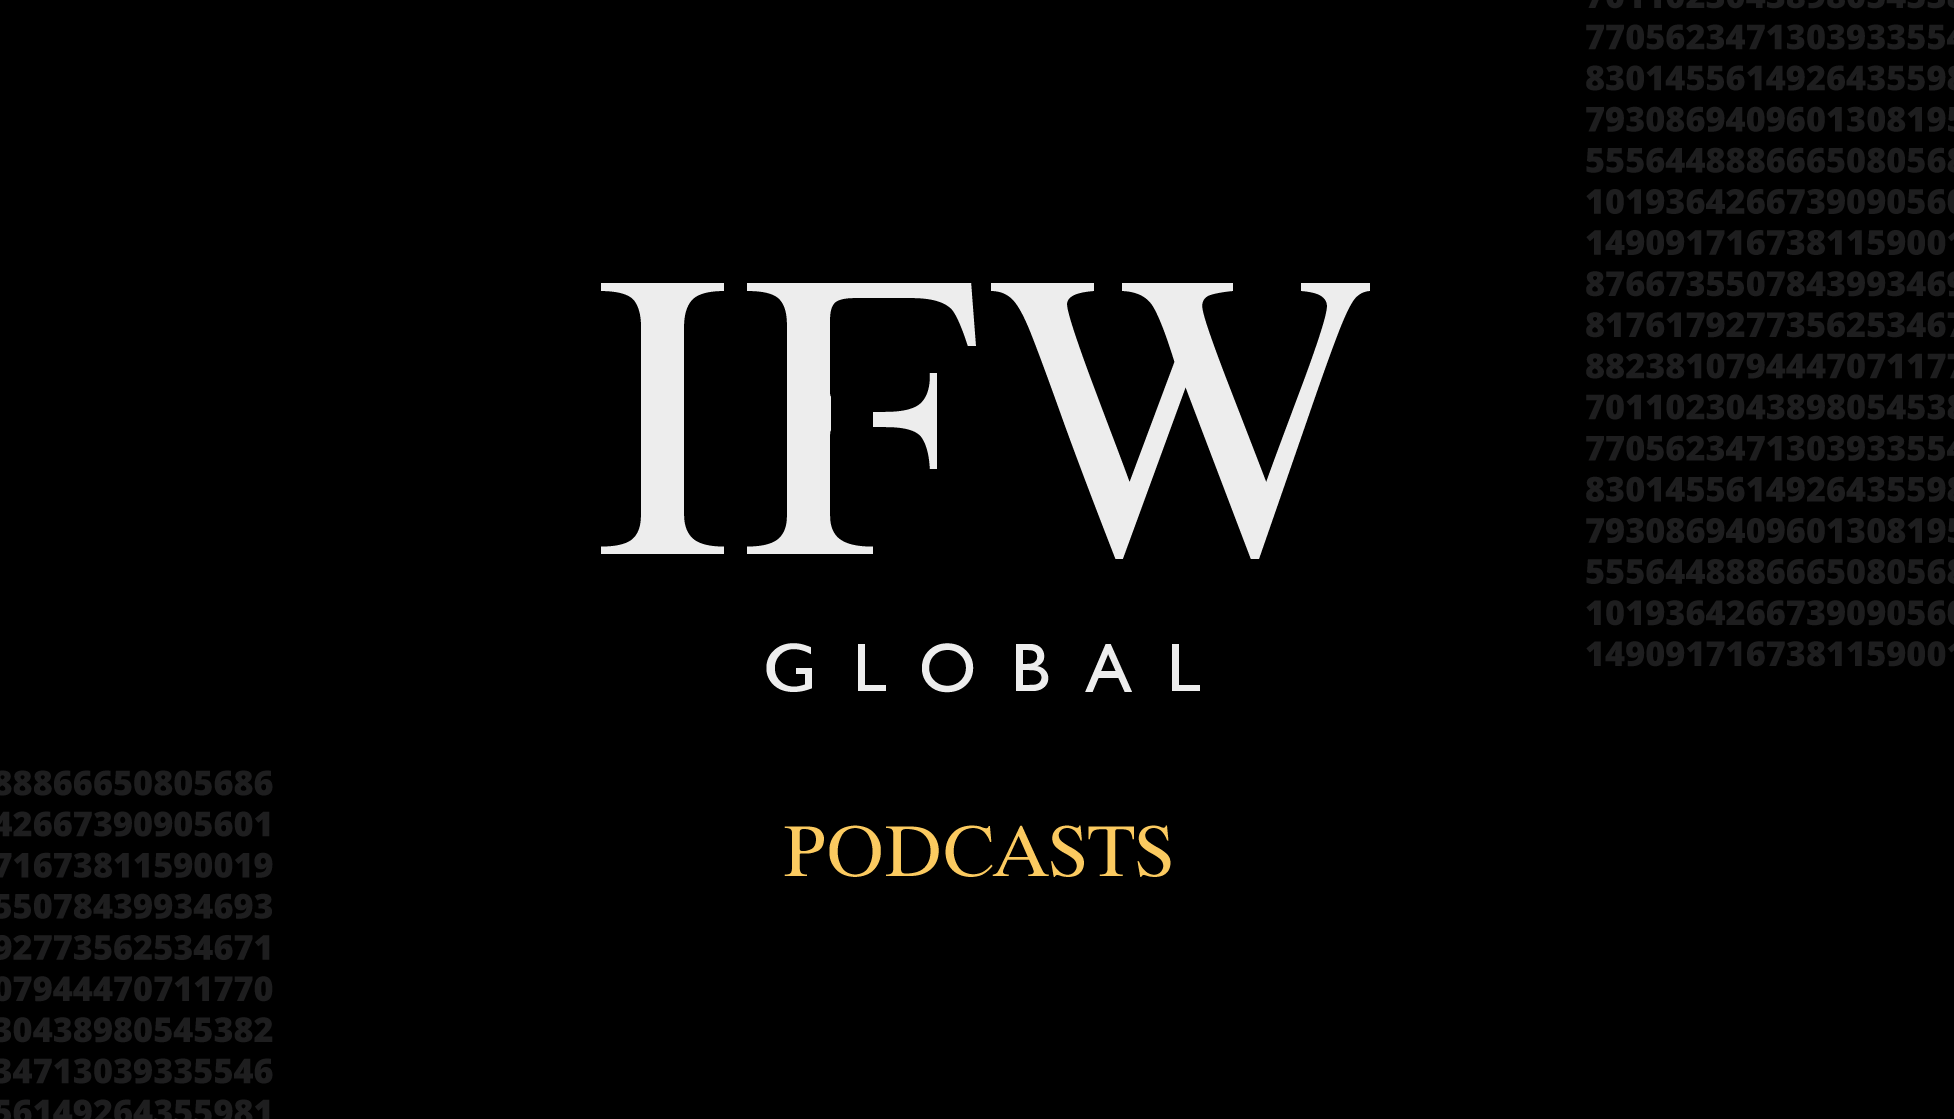 IFW Podcast Screen 02 1